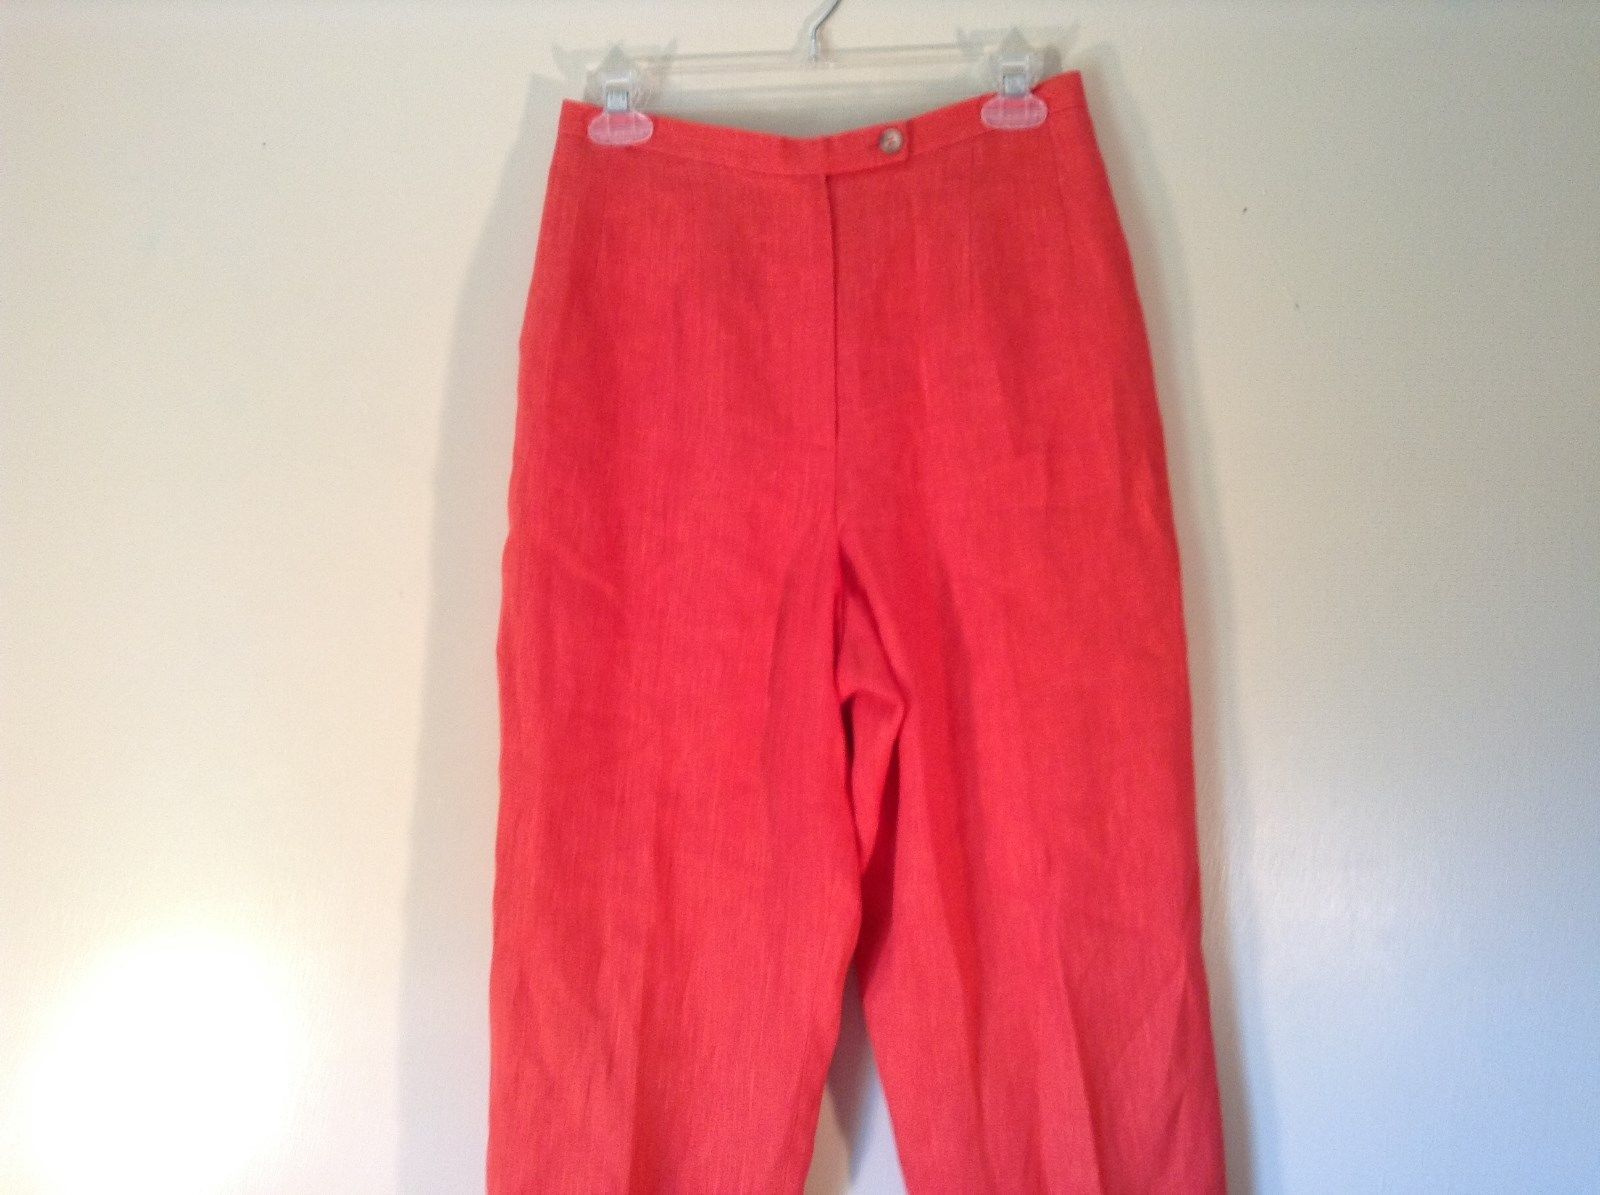 Harve Benard Red 100 Percent Linen Dress Pants Stretchy Waist Size 8P